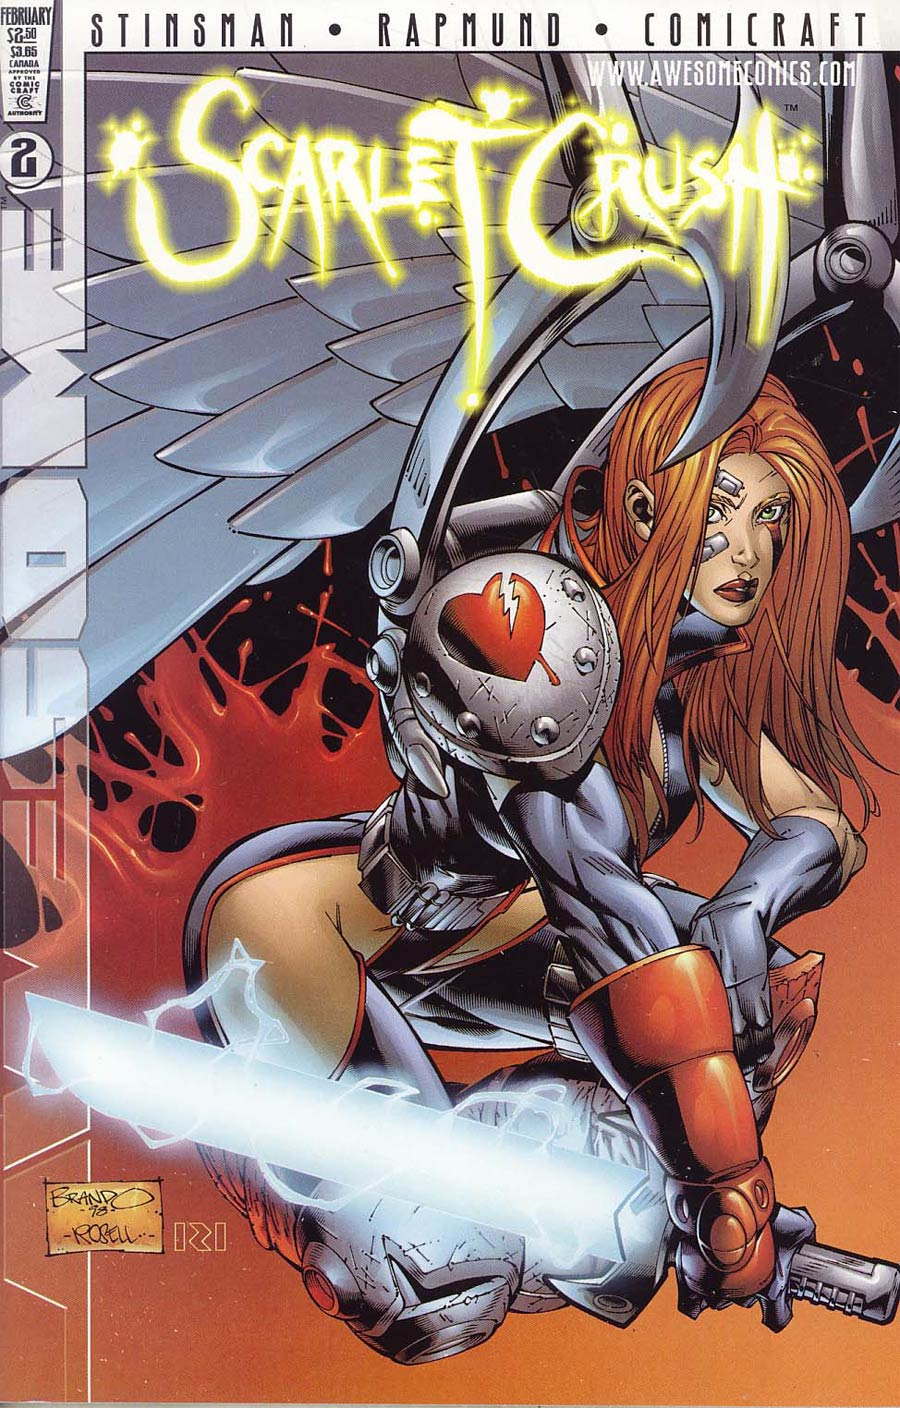 Scarlet Crush #2 Cover A Peterson